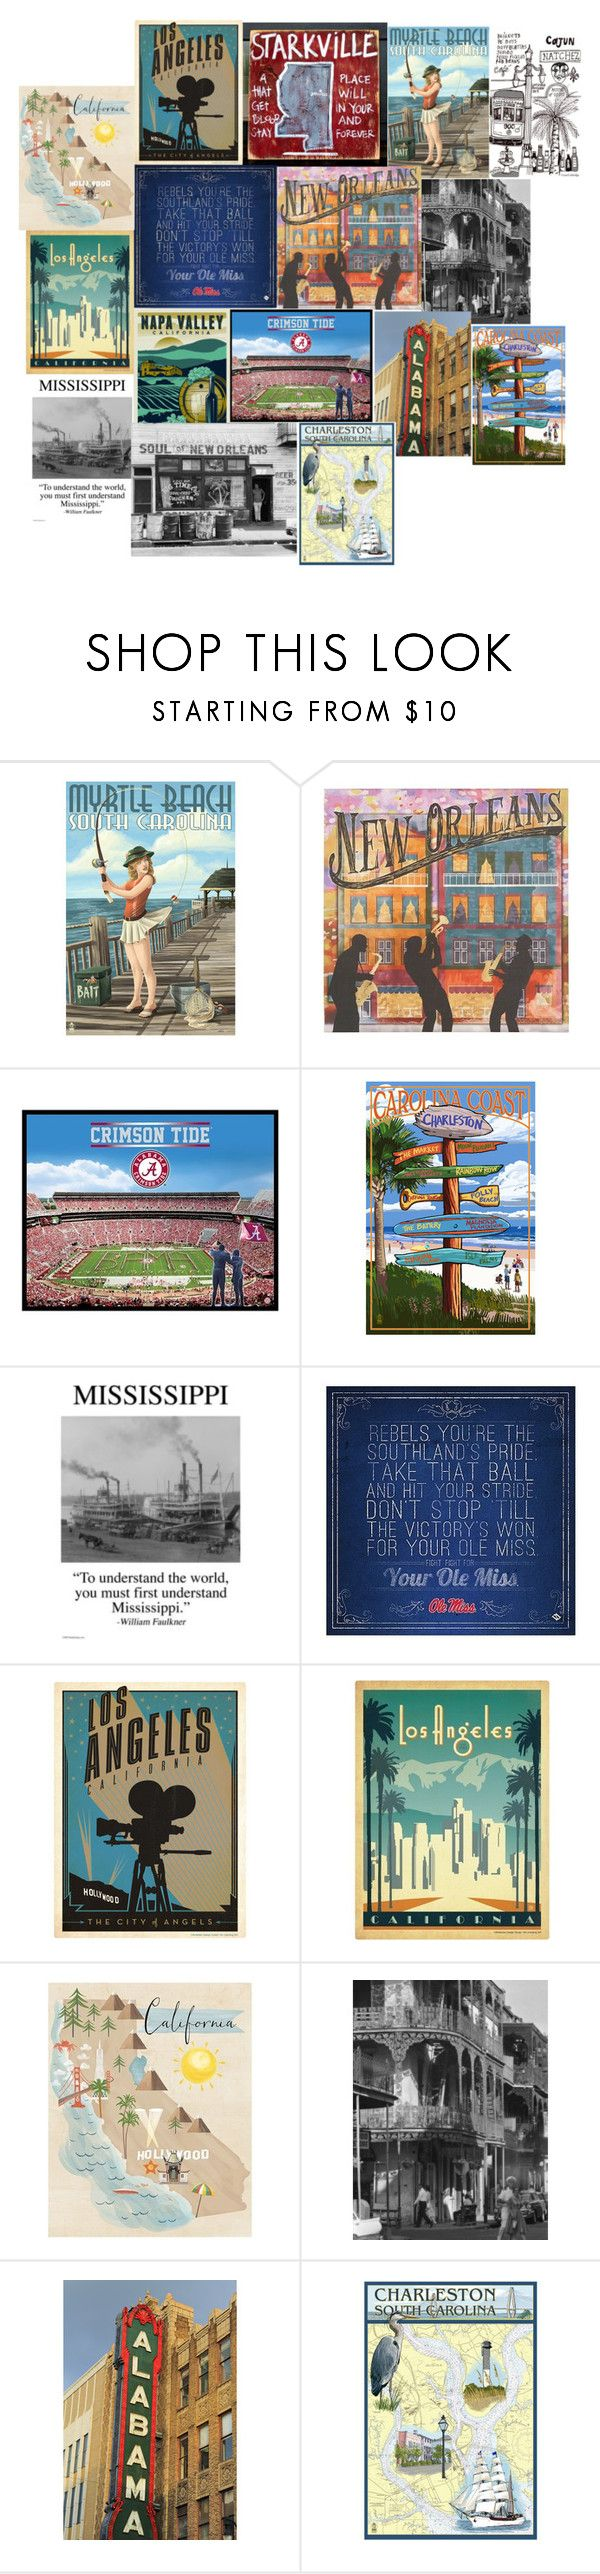 """The universities I will apply for: UNO, UA, USC, Ole Miss and UCLA"" by ellsi-bells ❤ liked on Polyvore featuring interior, interiors, interior design, home, home decor, interior decorating and WALL"